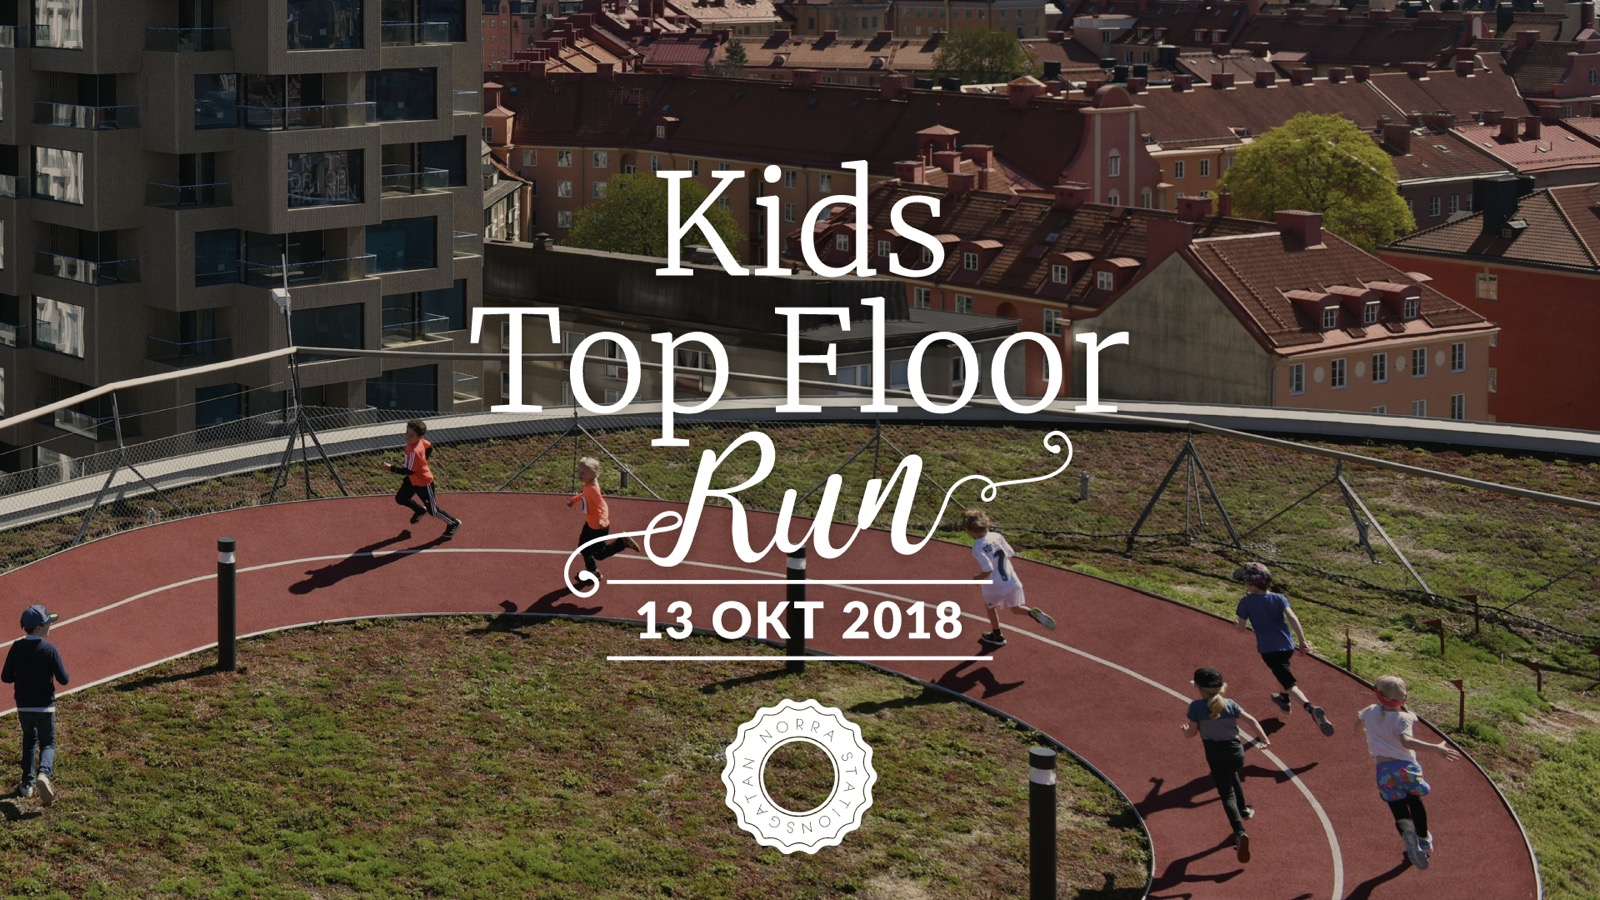 Kids-Top-Floor-Run-Okt-2018-1920x1080px-1.jpg